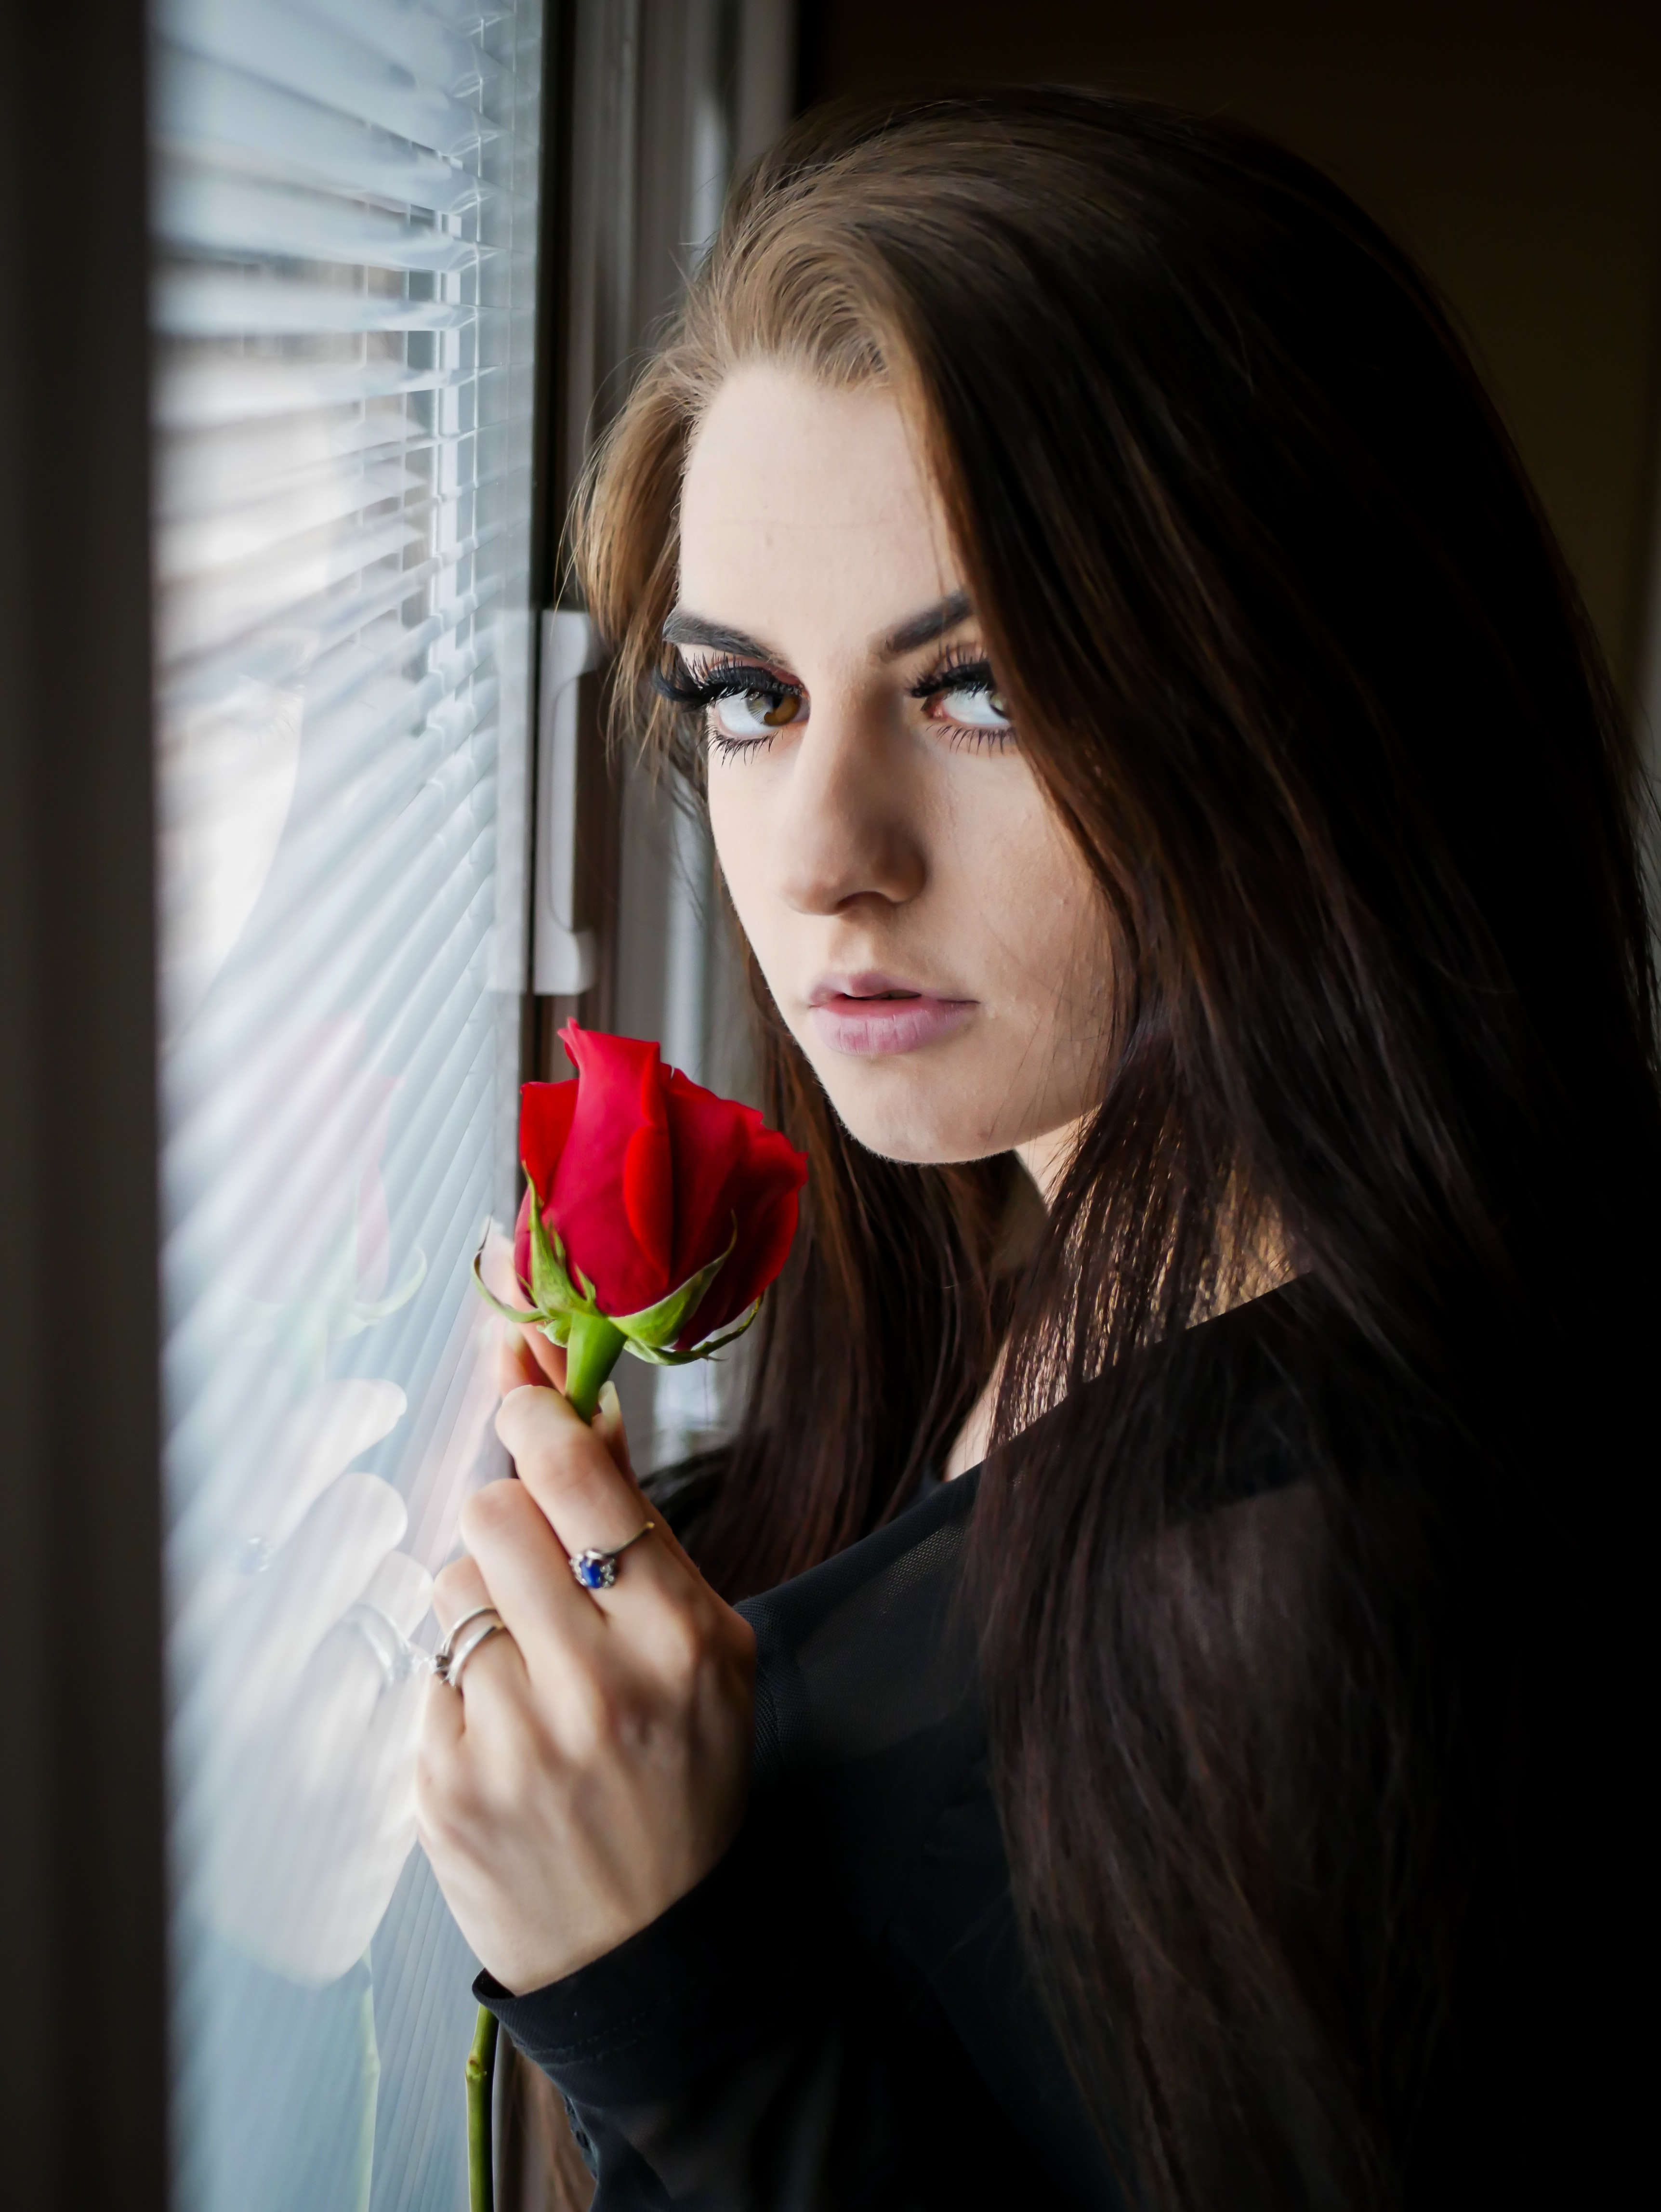 woman in black long-sleeved top holding red rose